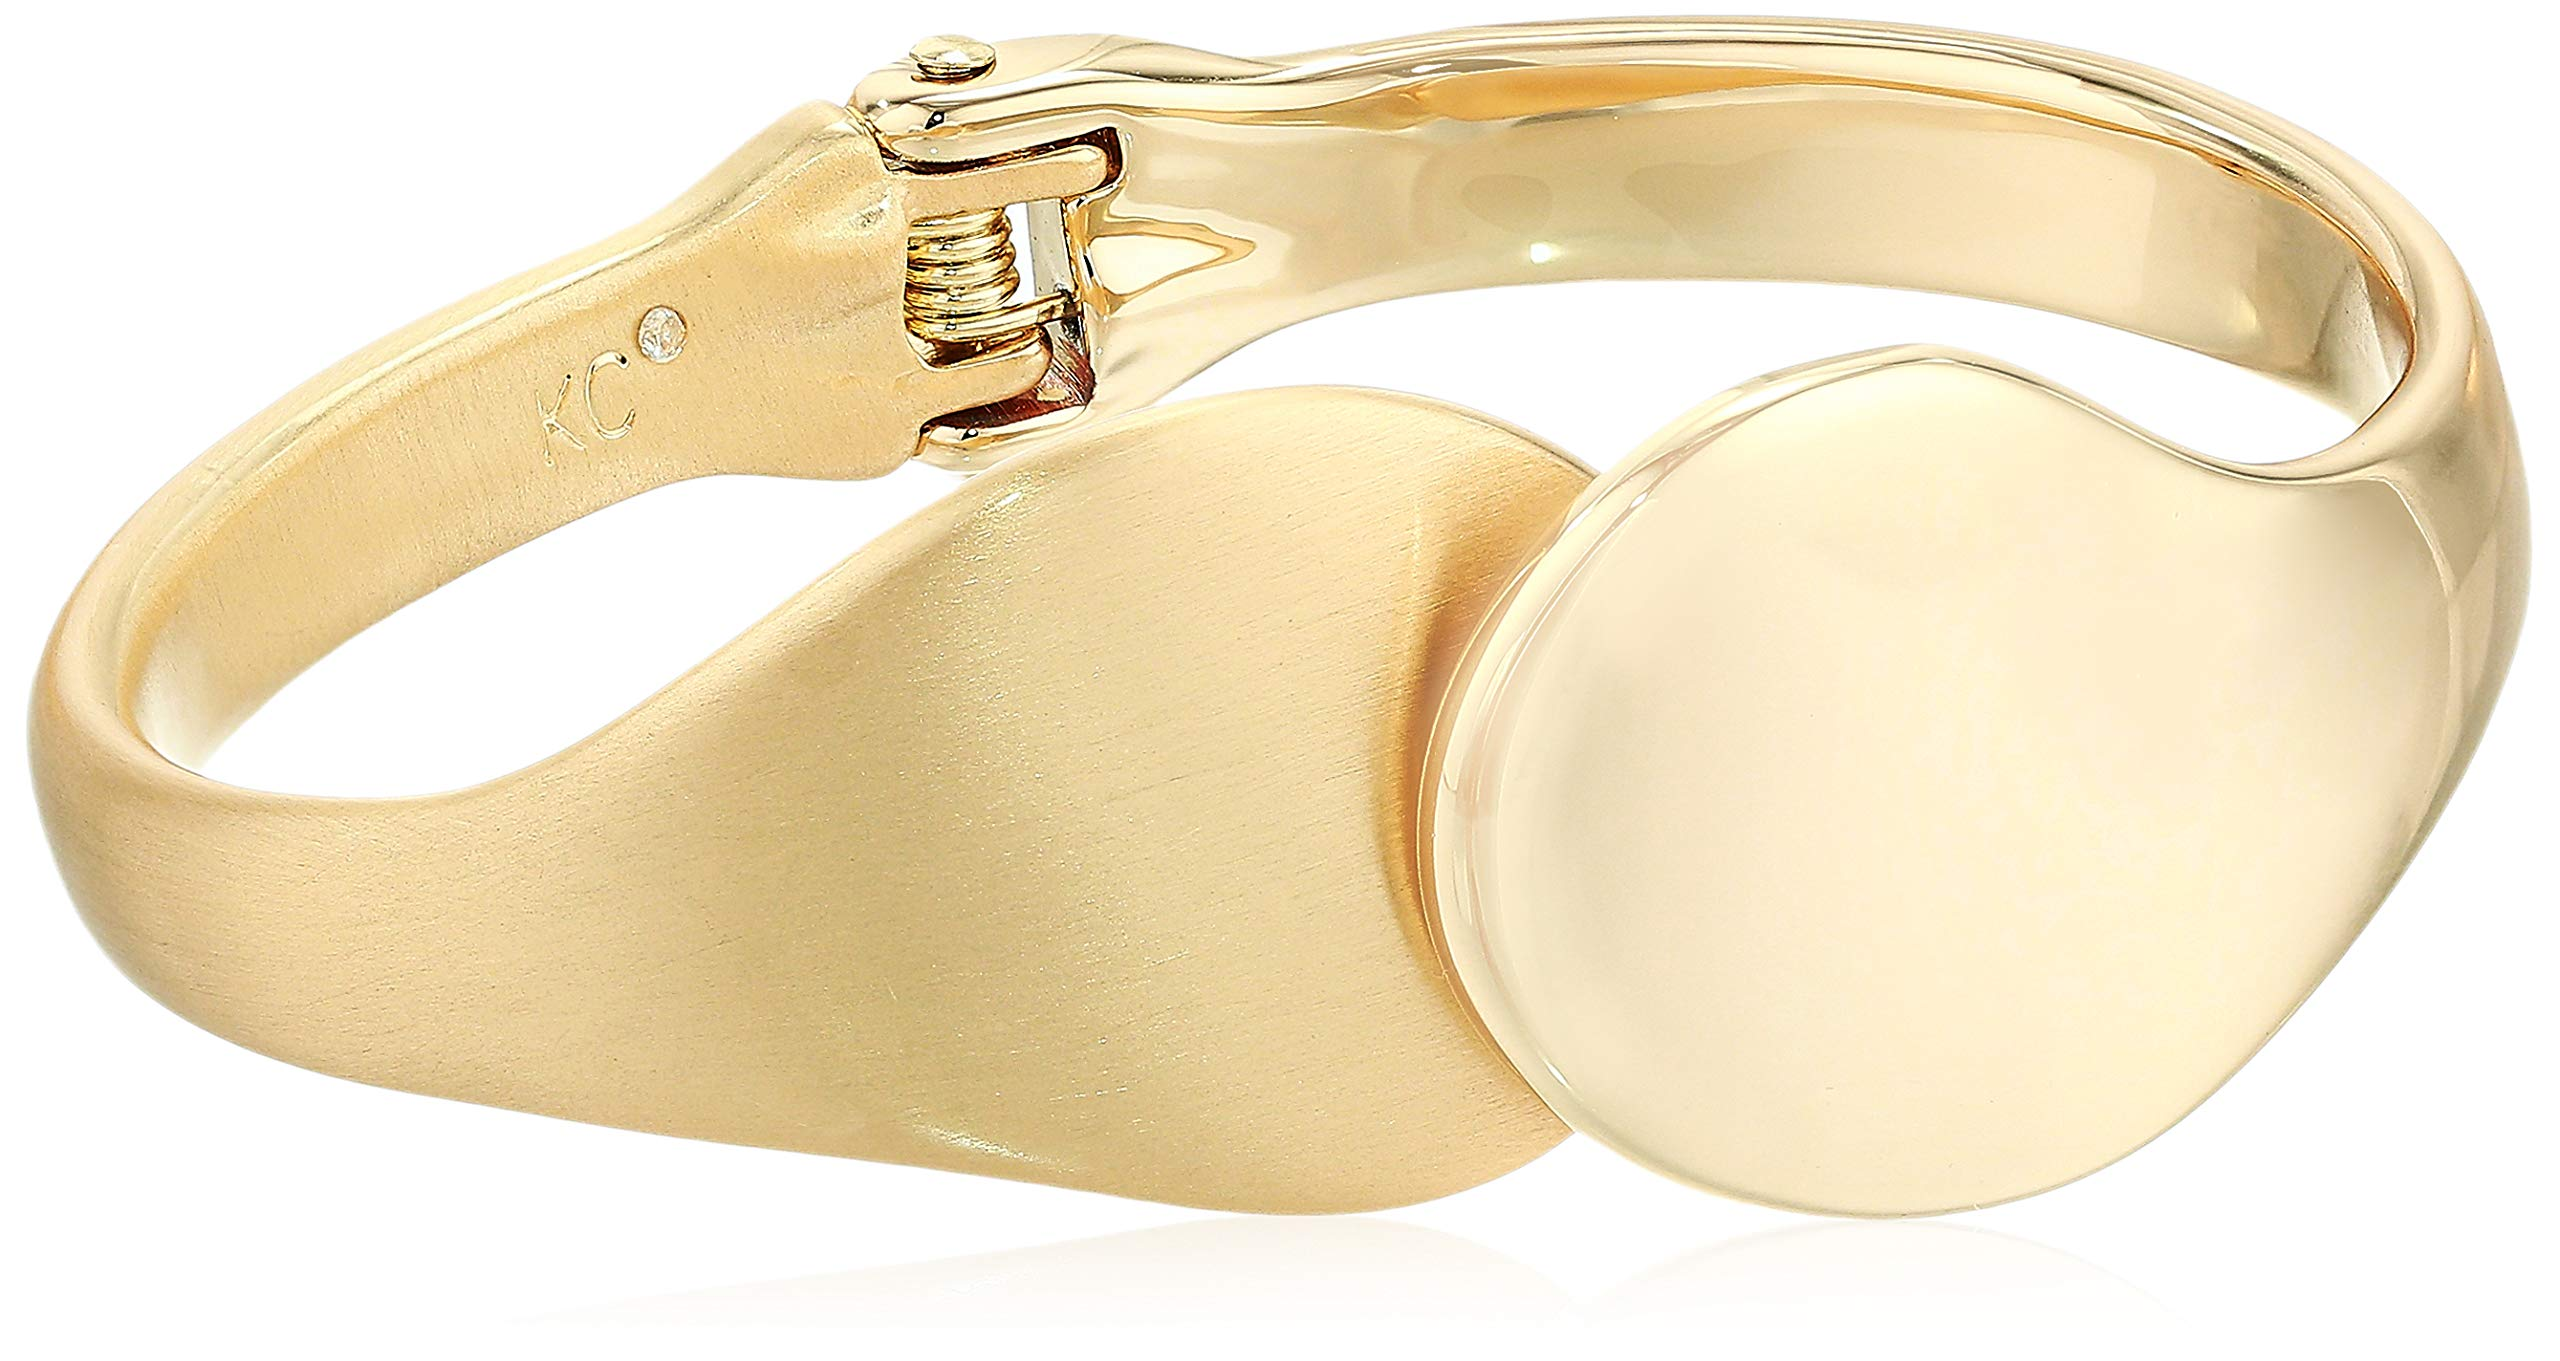 Kenneth Cole Women's Sculptural Hinged Bangle Bracelet, Gold, One Size